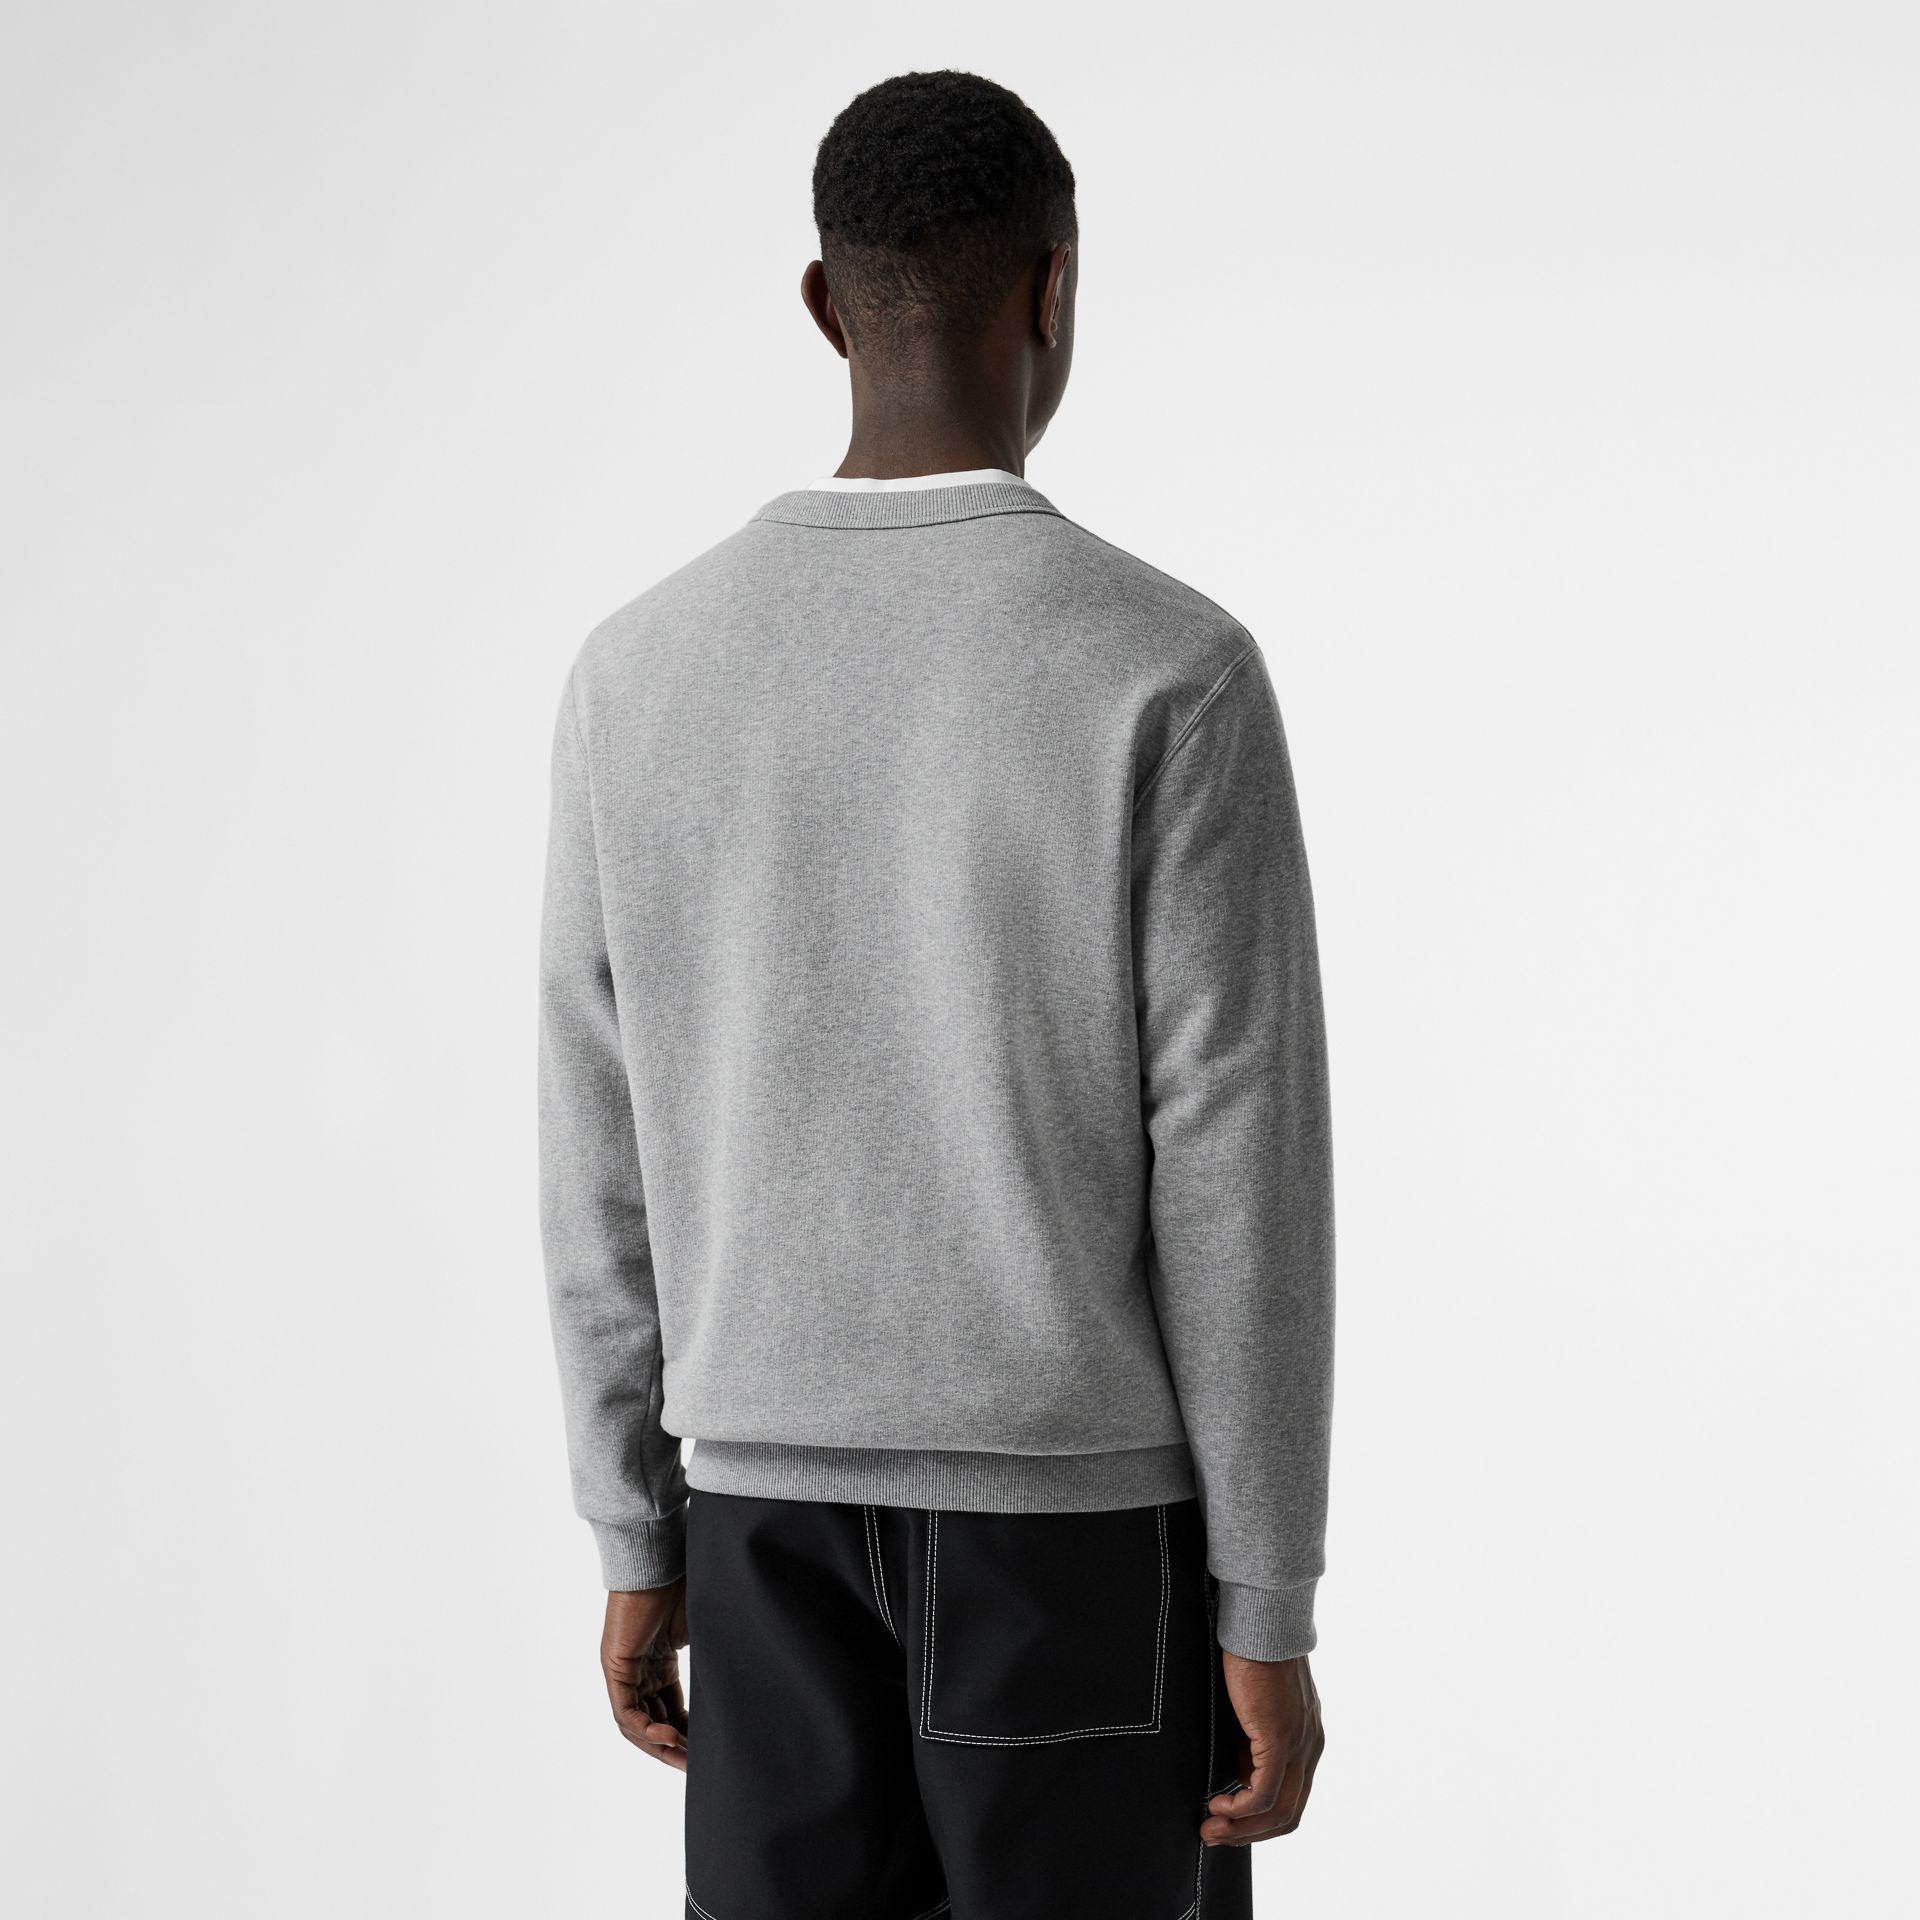 Cut-out Detail Cotton Sweatshirt in Pale Grey Melange - Men | Burberry - gallery image 2